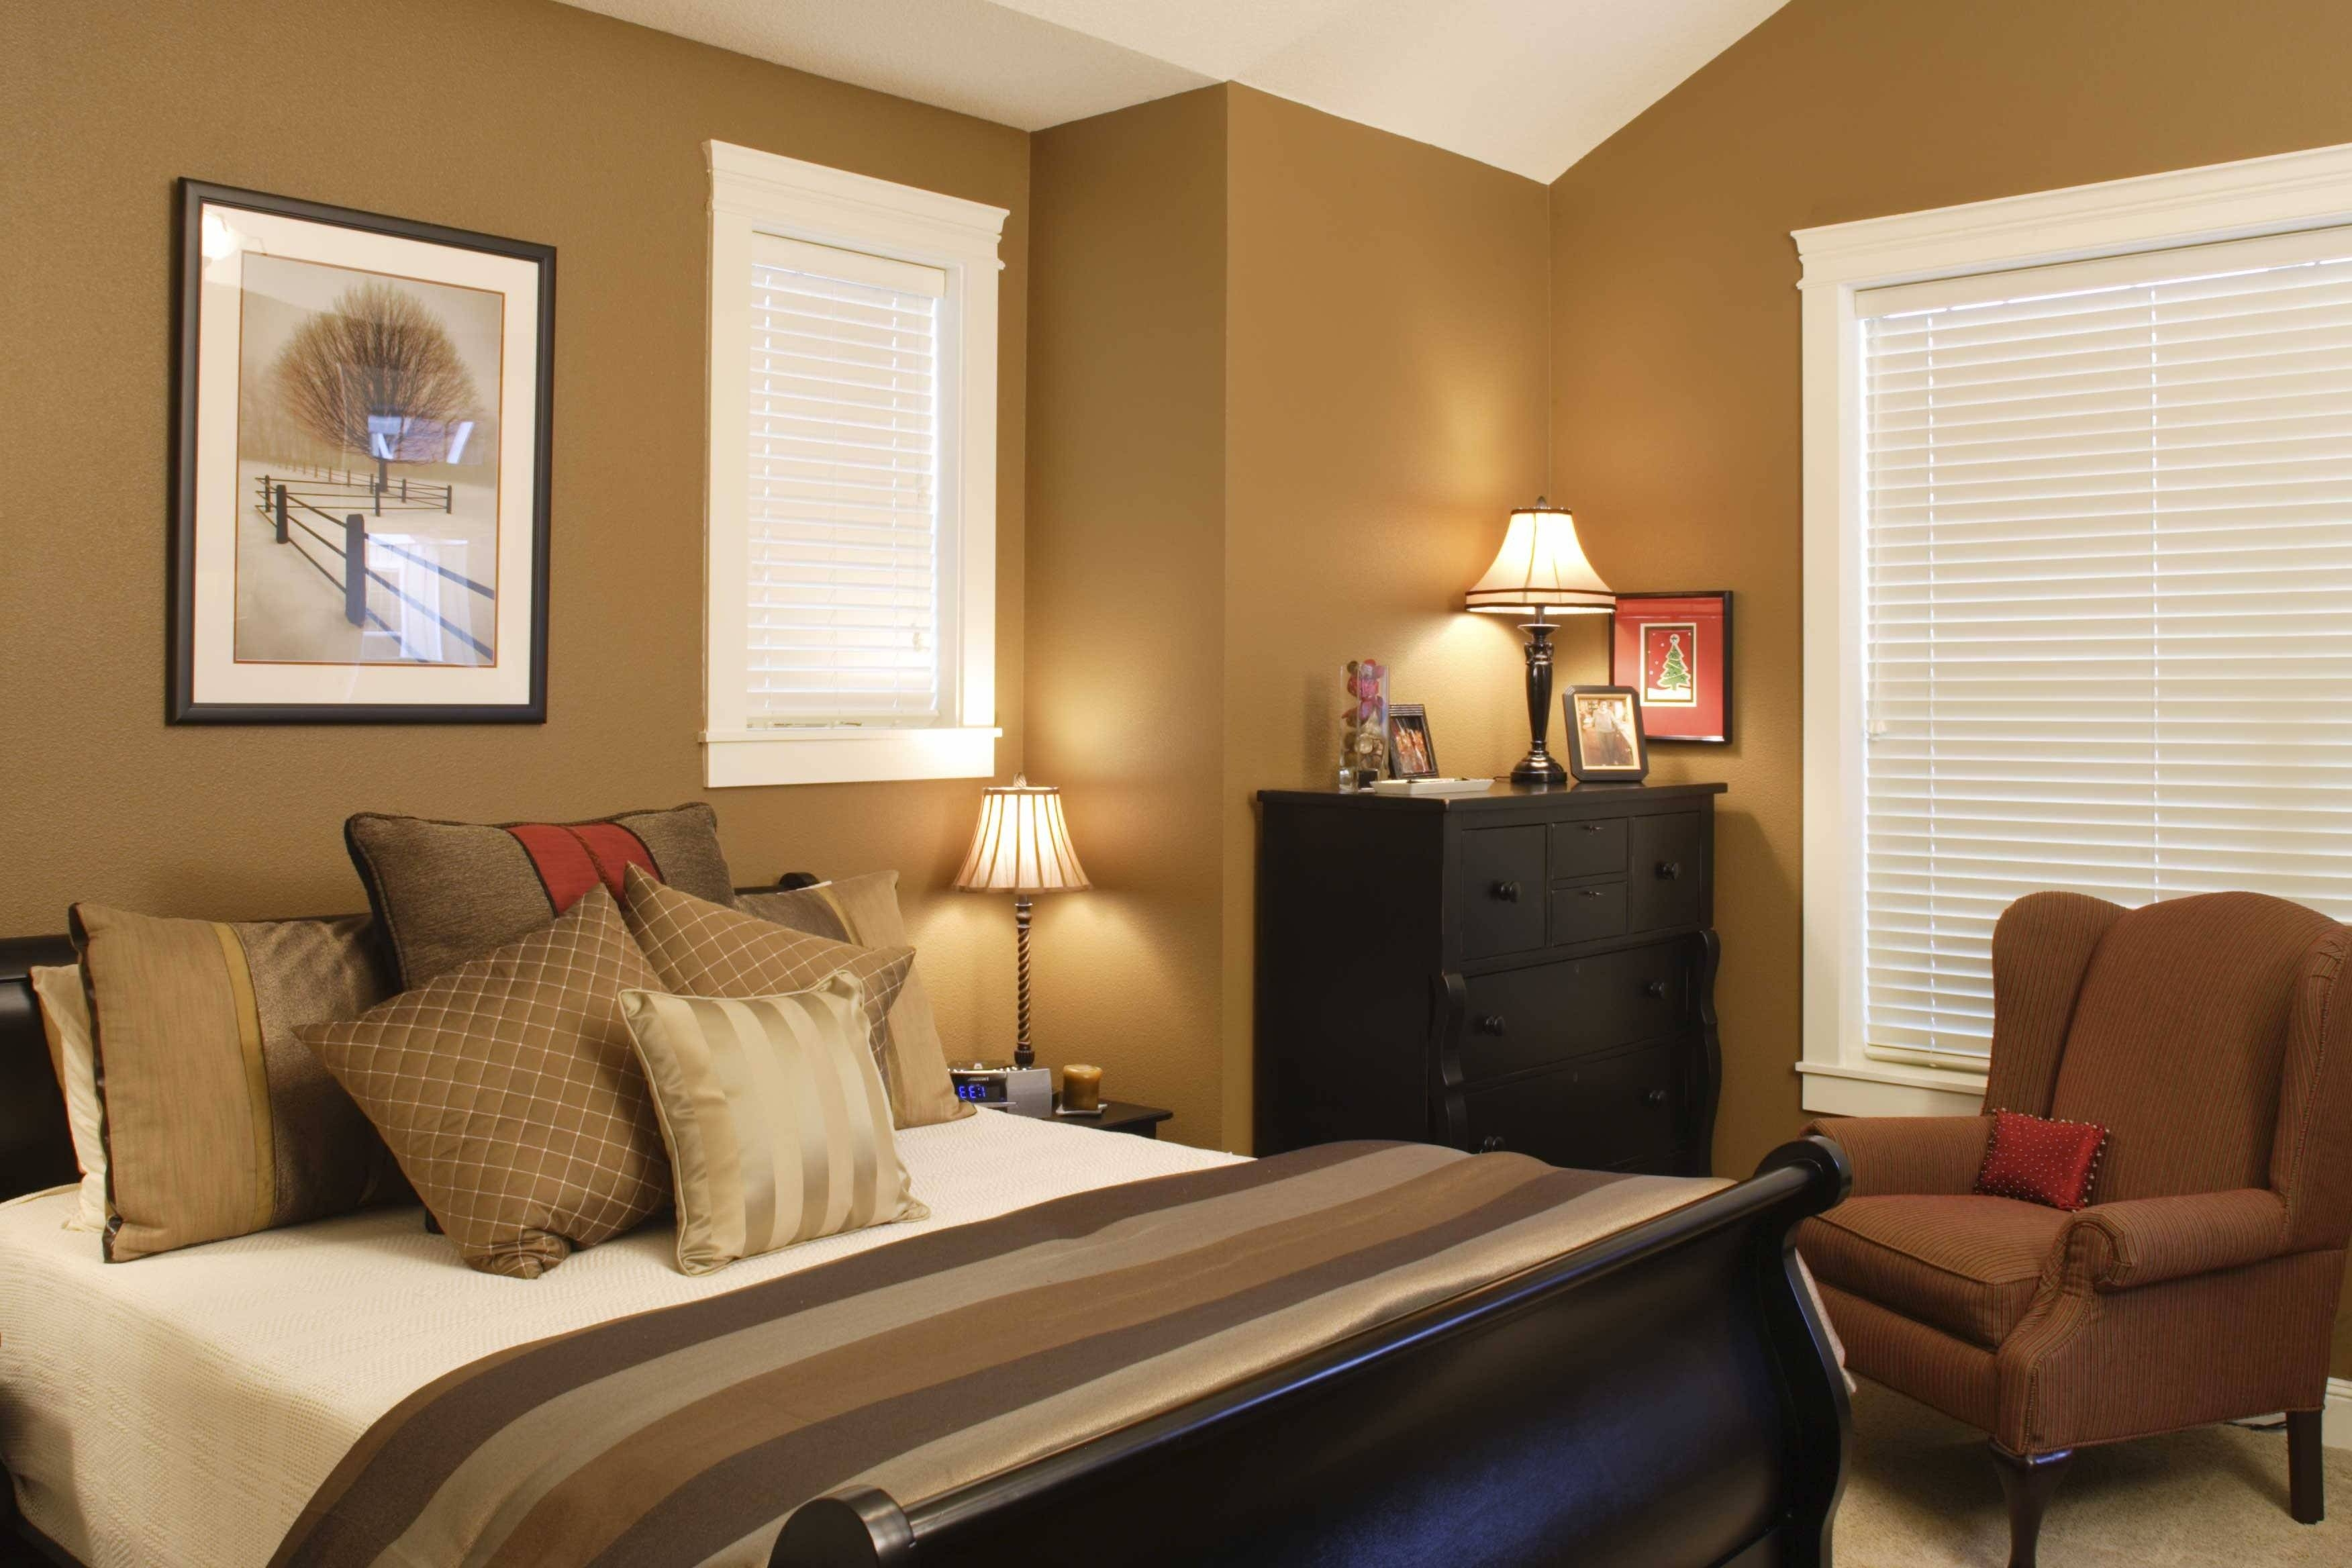 Bedroom : Framed Wall Art Wall Art Stores Near Me Large Wall Art Within Most Up To Date Bedroom Framed Wall Art (View 5 of 20)